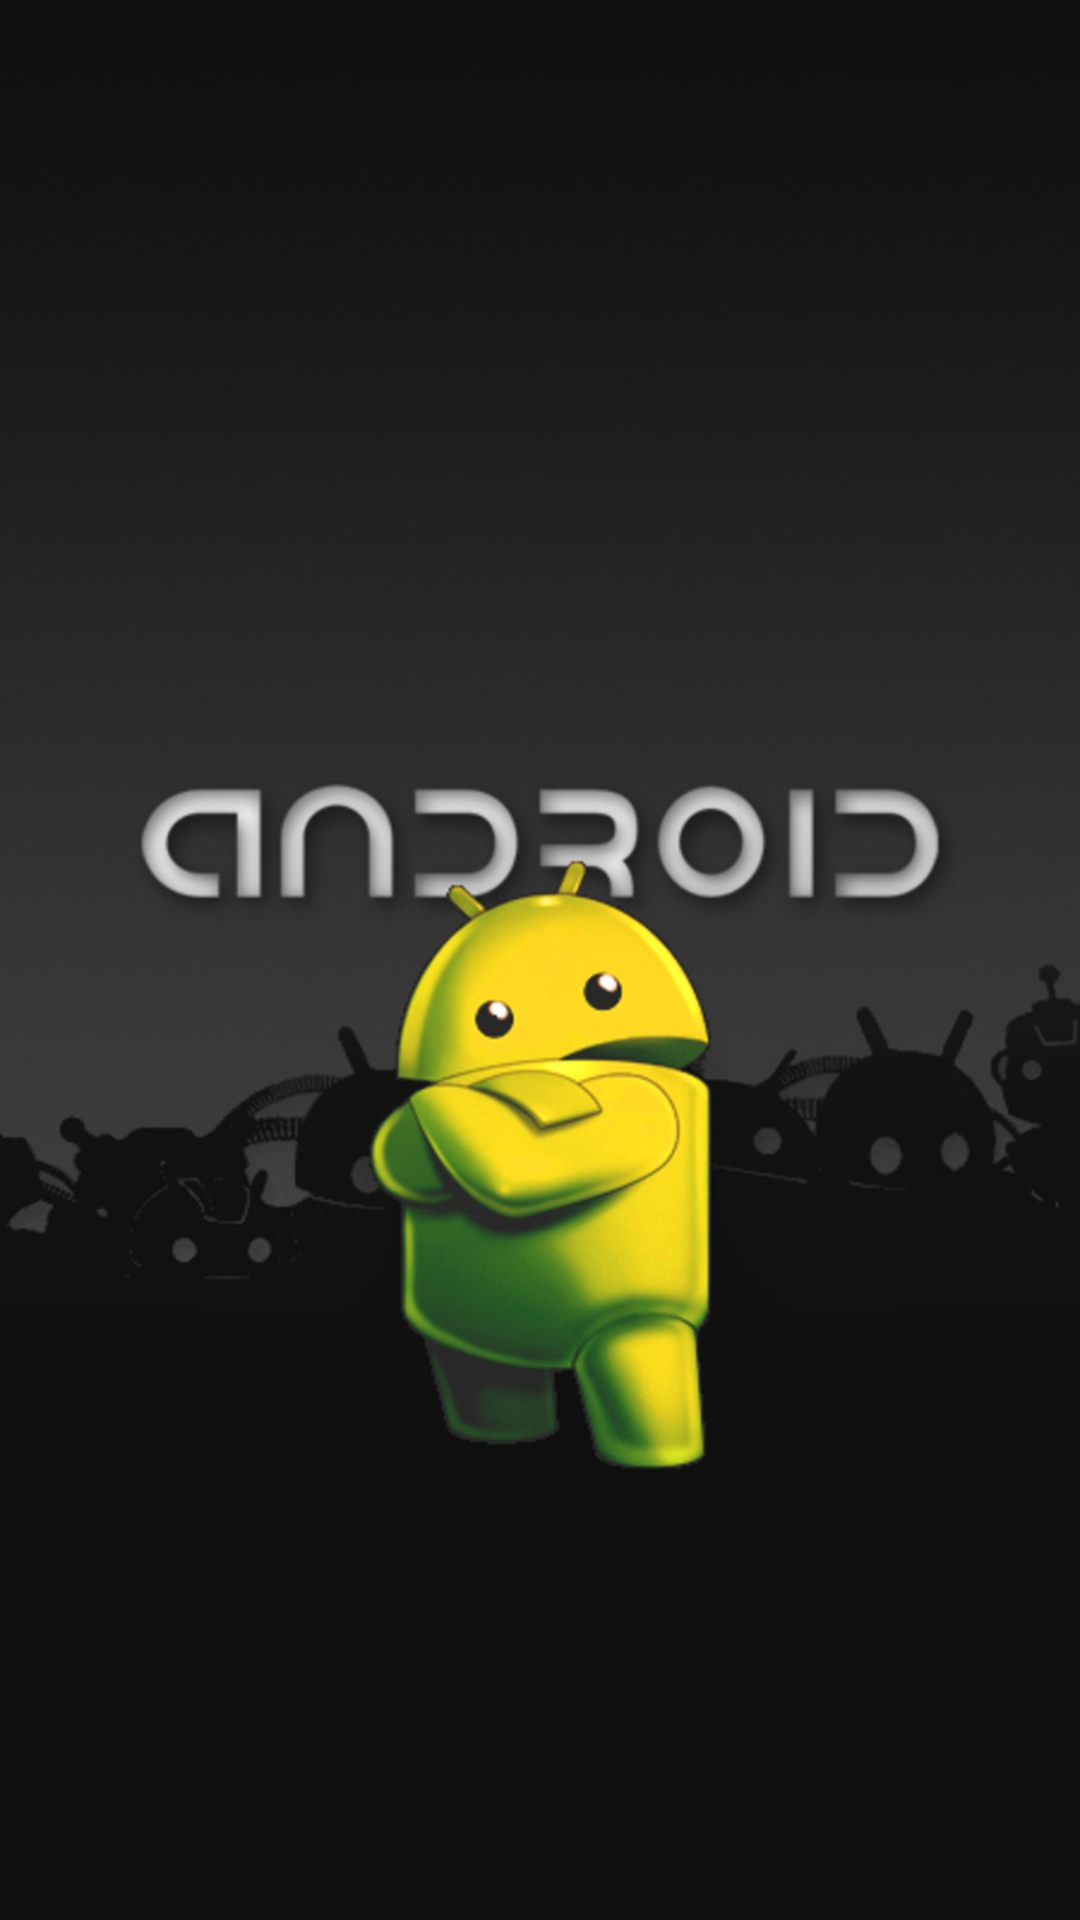 many variations of wallpapers with android logo